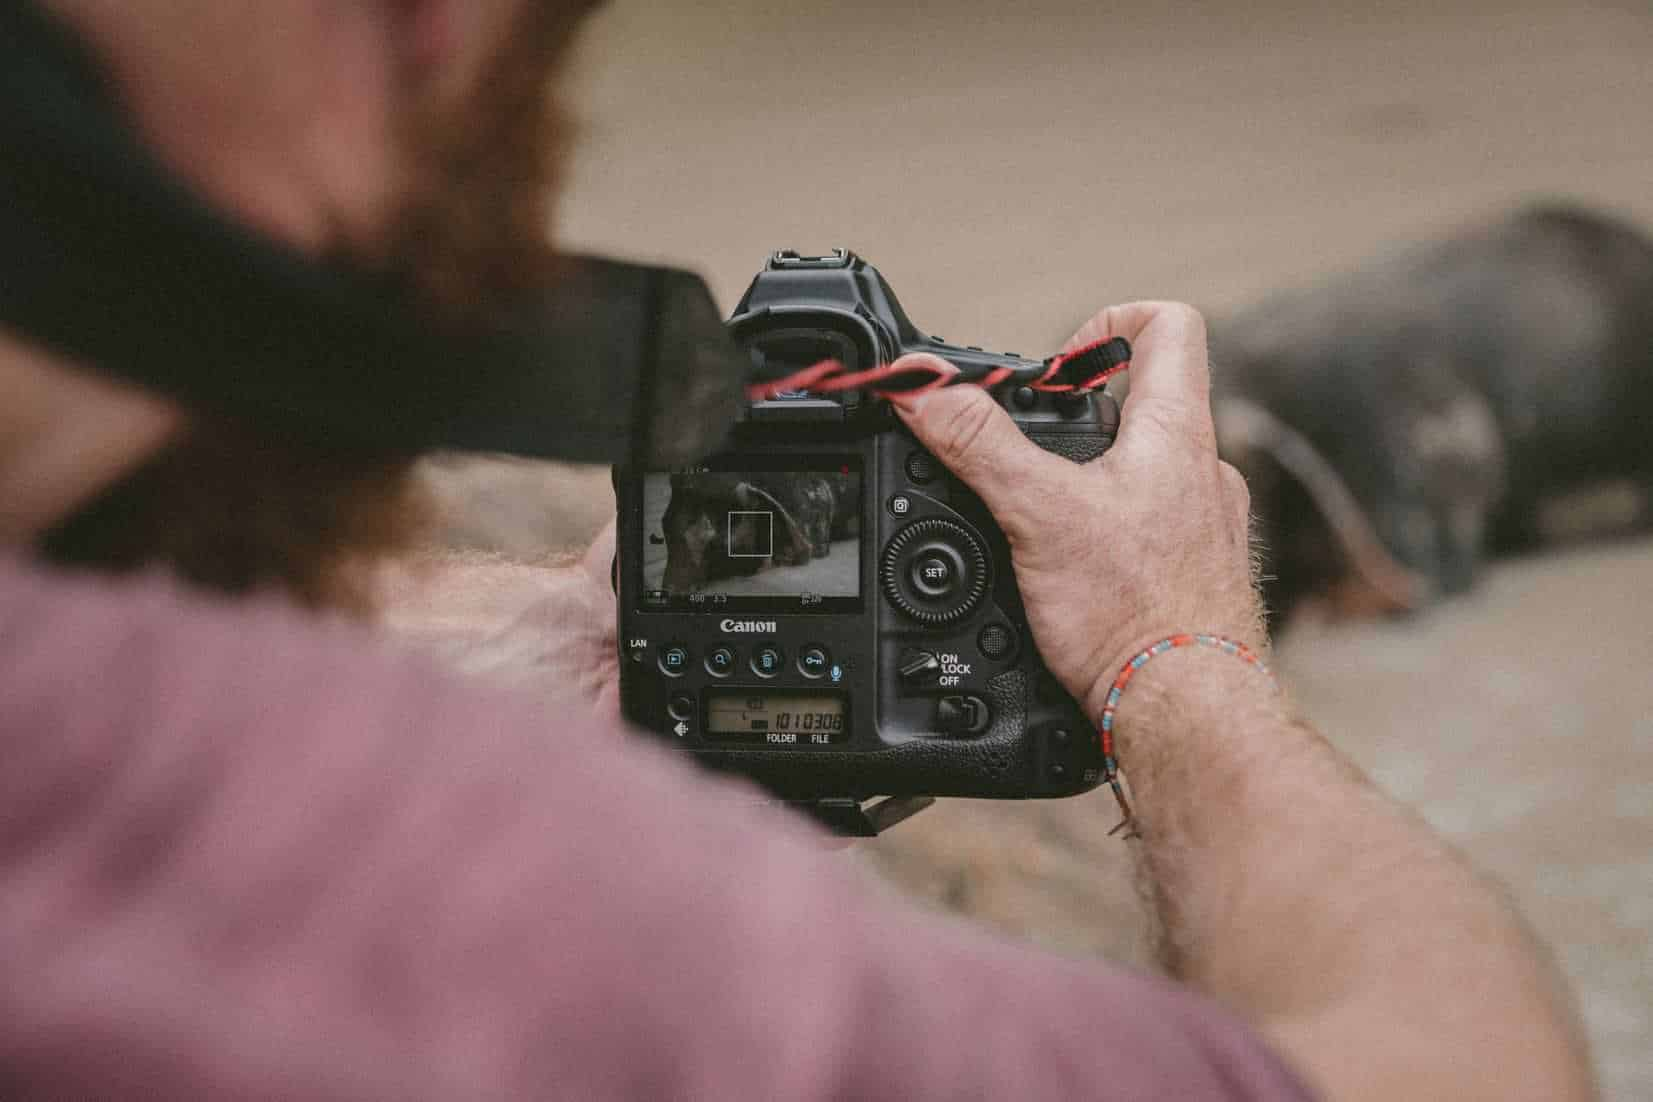 A man takes a photo of a dog with a DSLR camera.